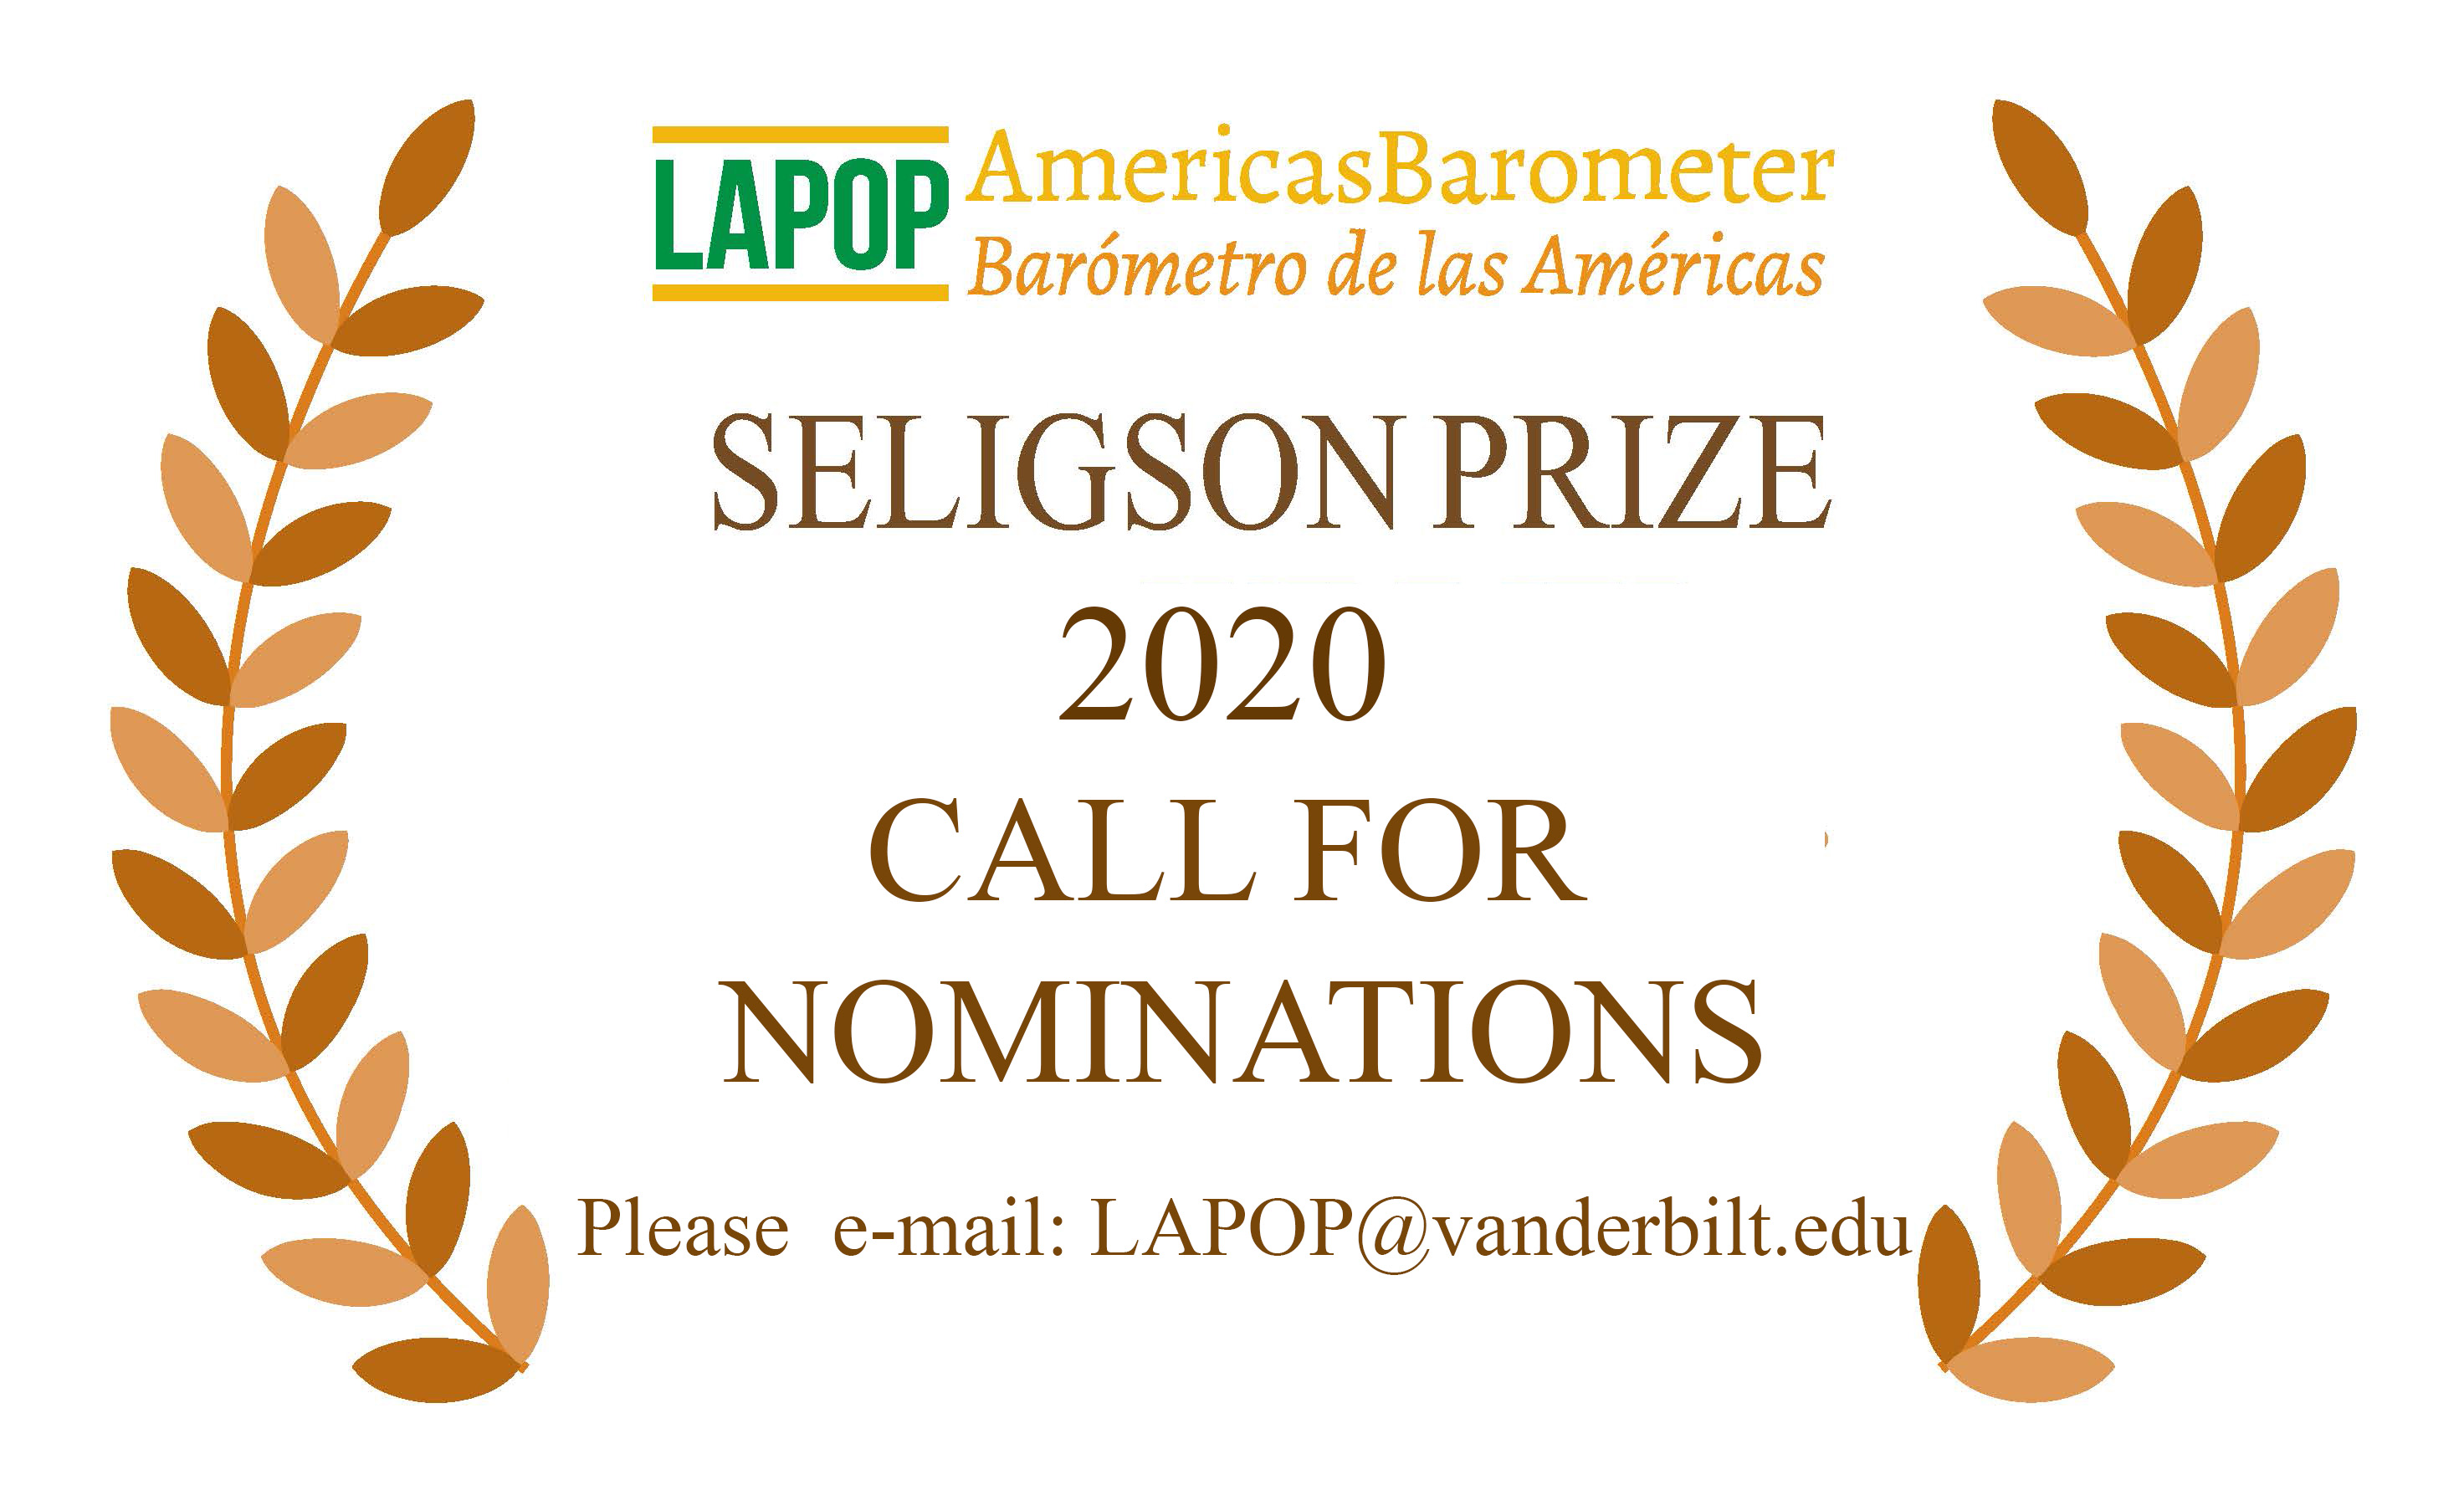 LAPOP Lab is pleased to announce a competition for this year's Seligson Prize. Click for the full announcement.